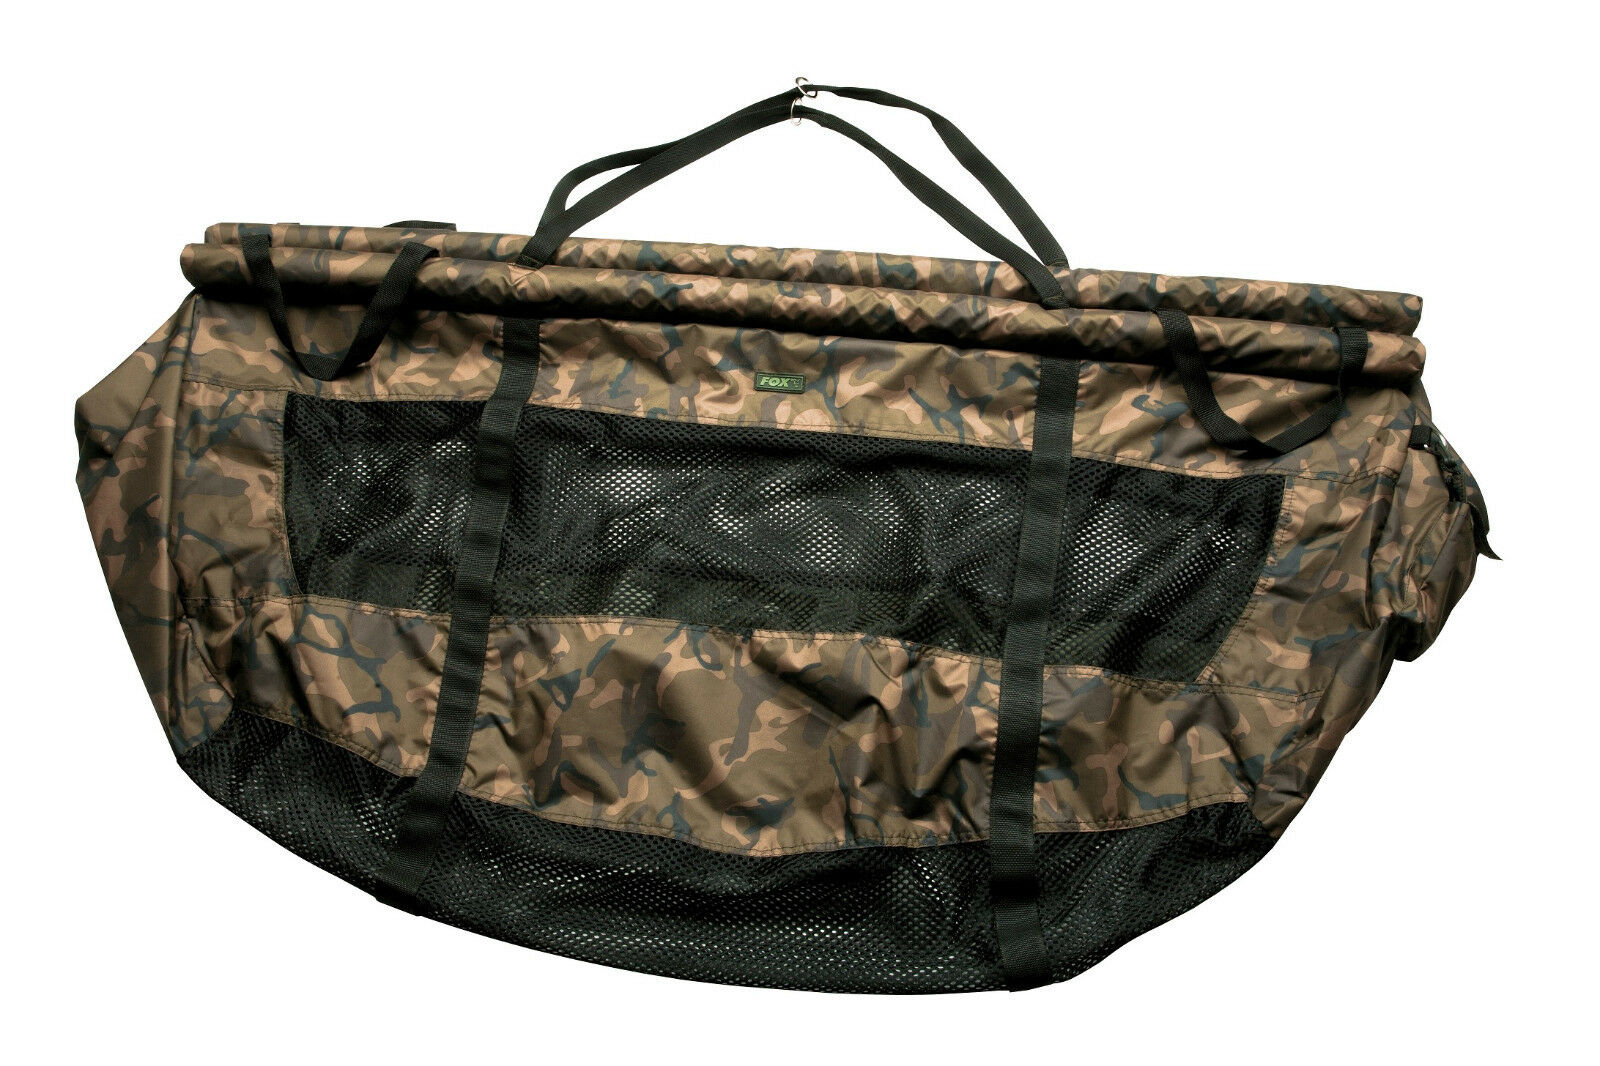 Fox str camo flotación weigh Sling ccc035 wiegeschlinge weightsling weighsling   Descuento del 70% barato